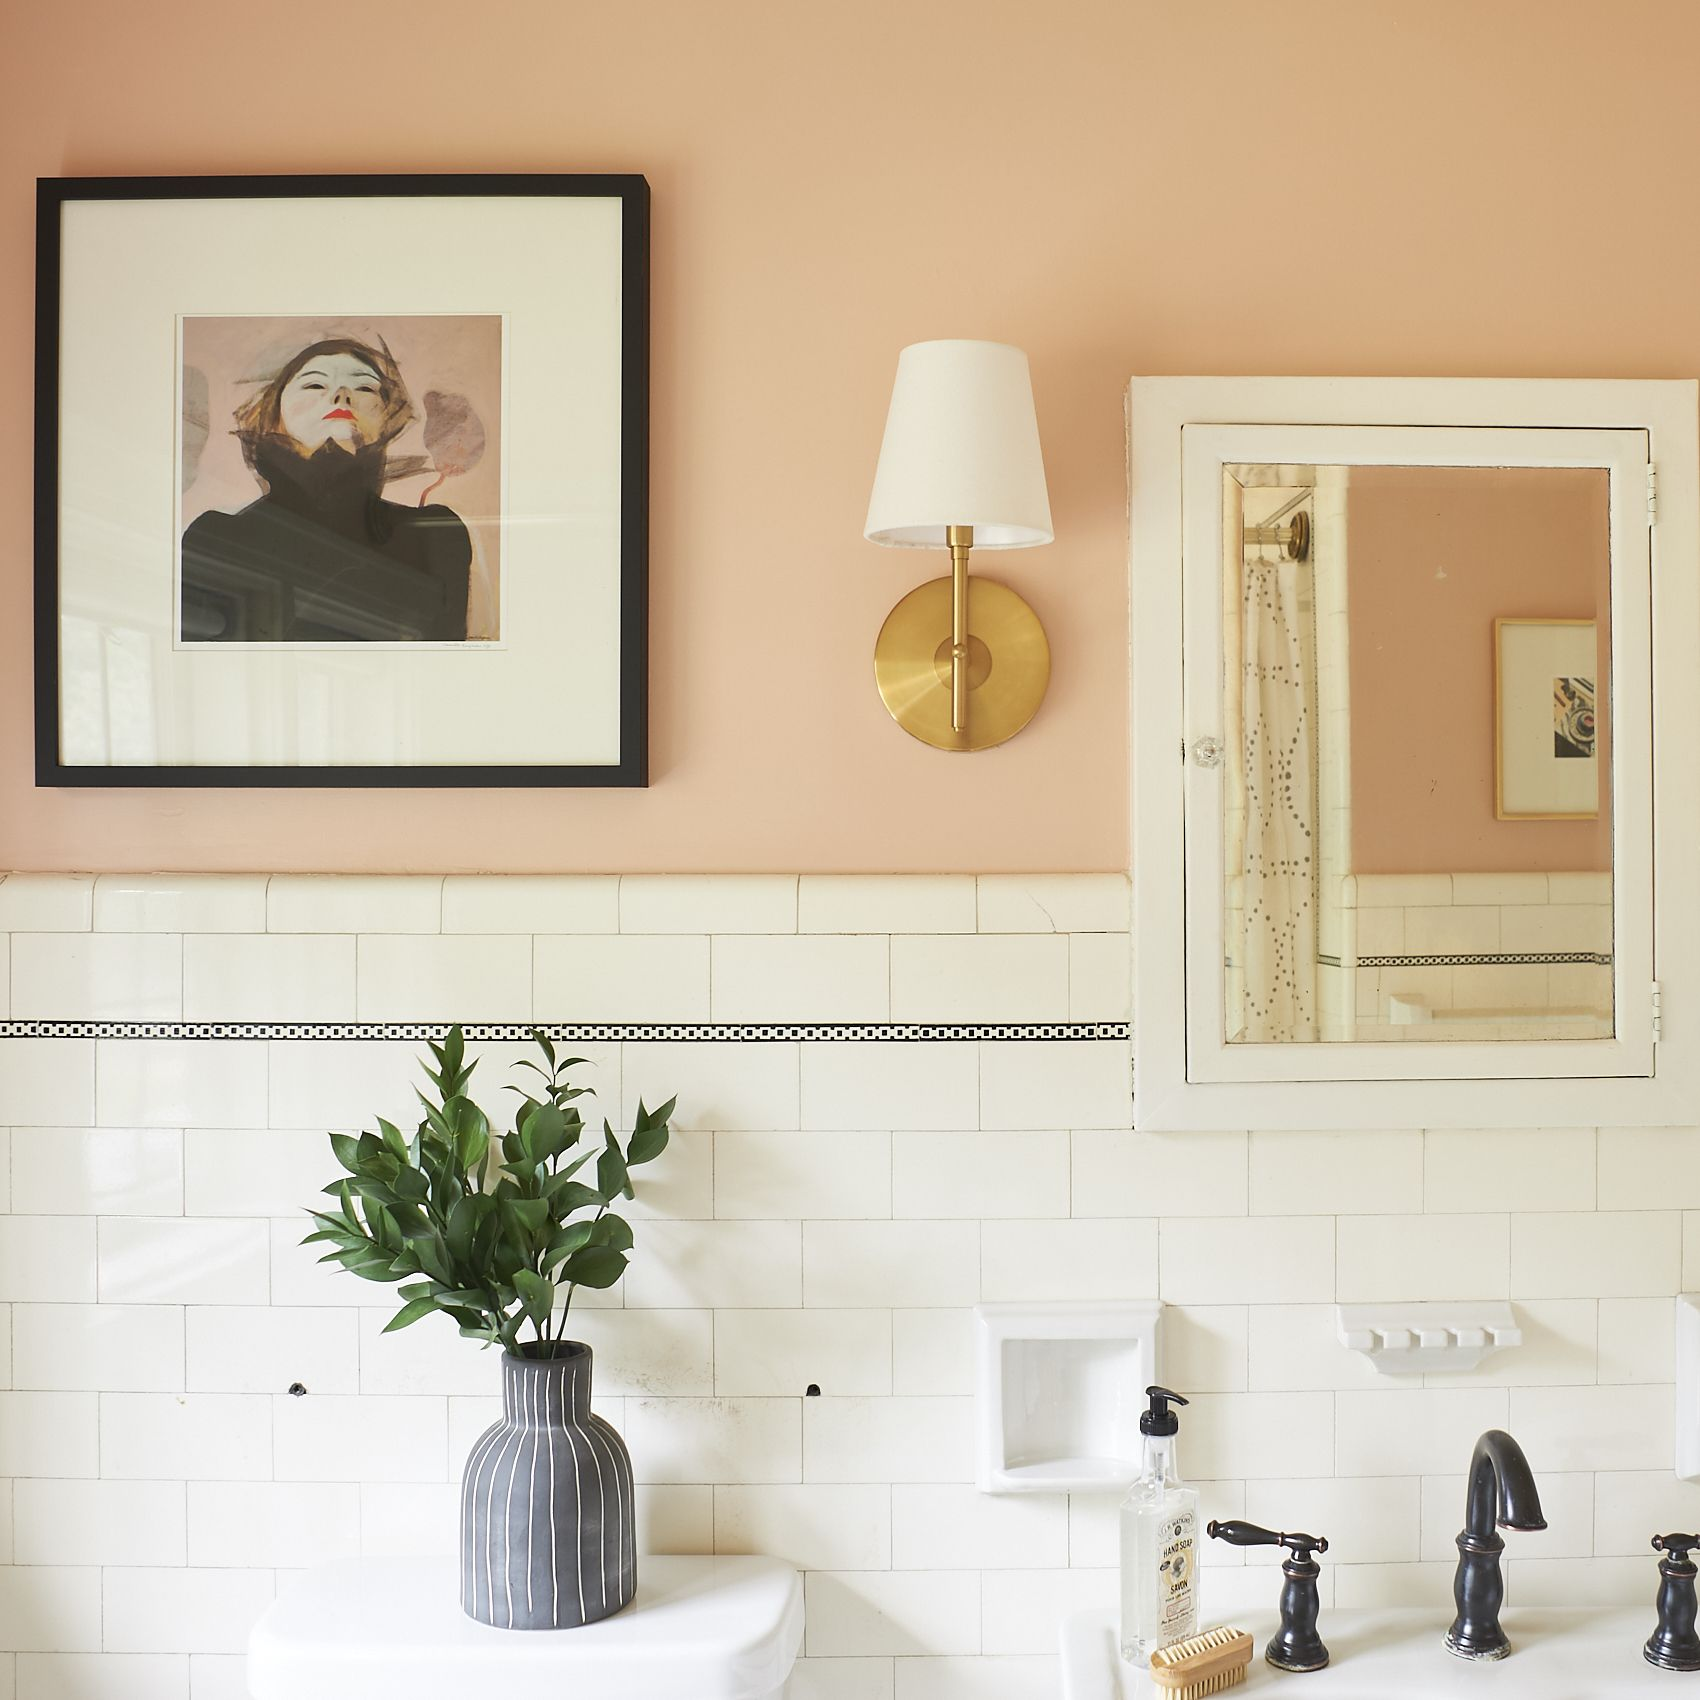 Blush and moody tones in a pittsburgh home for photographers via